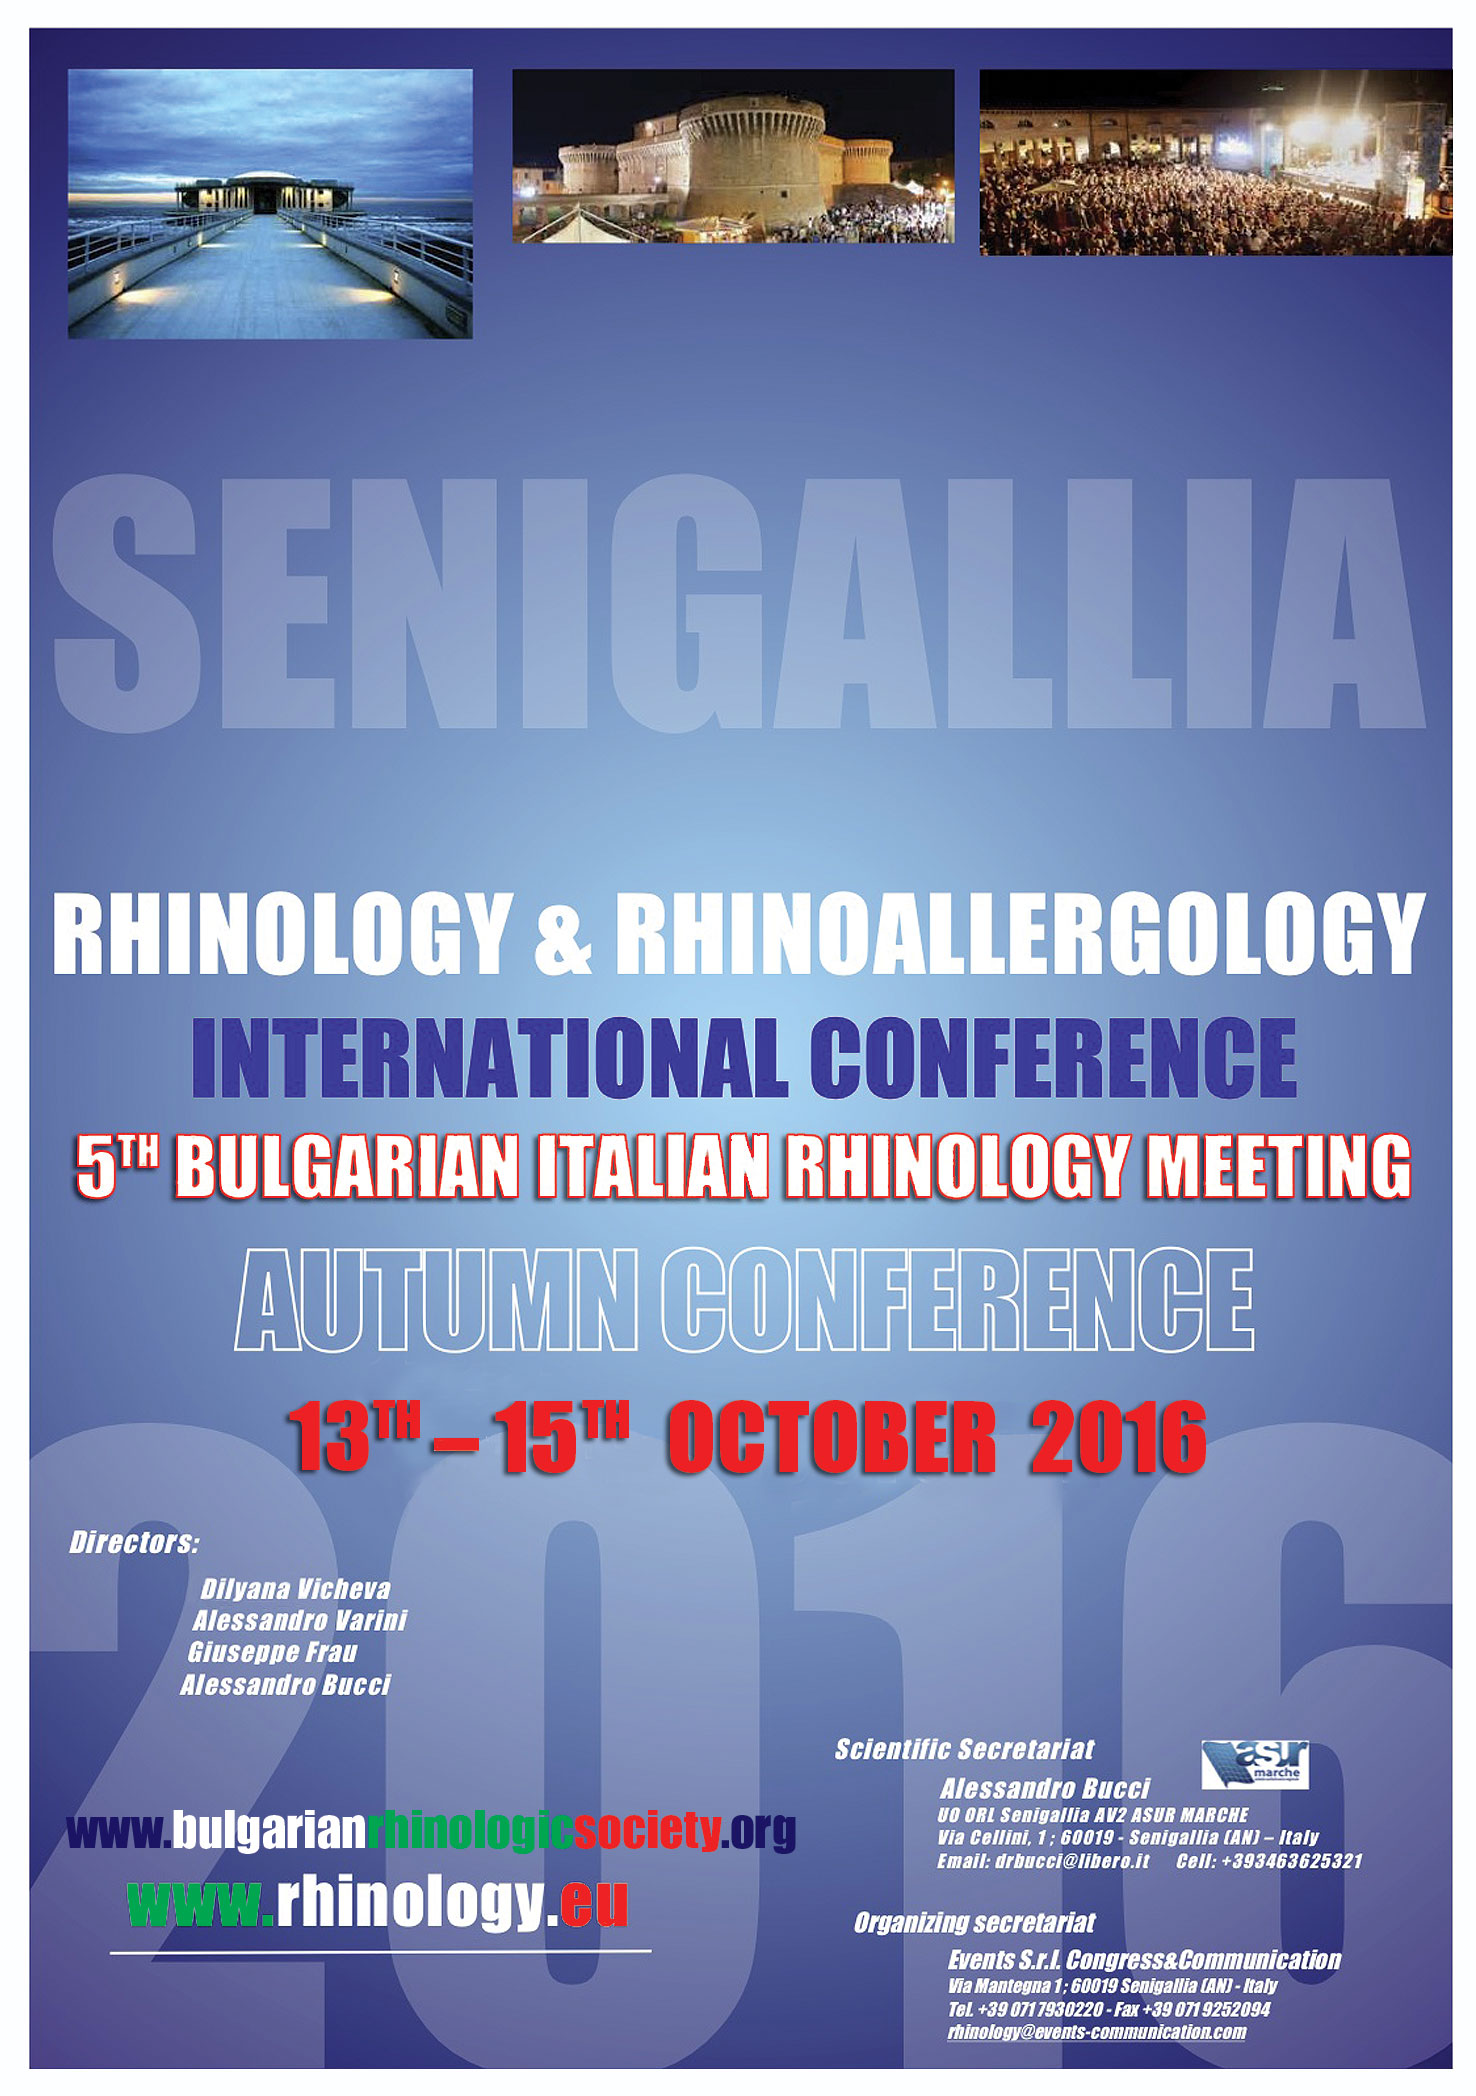 Flyer-Senigallia-5th-Rhinol